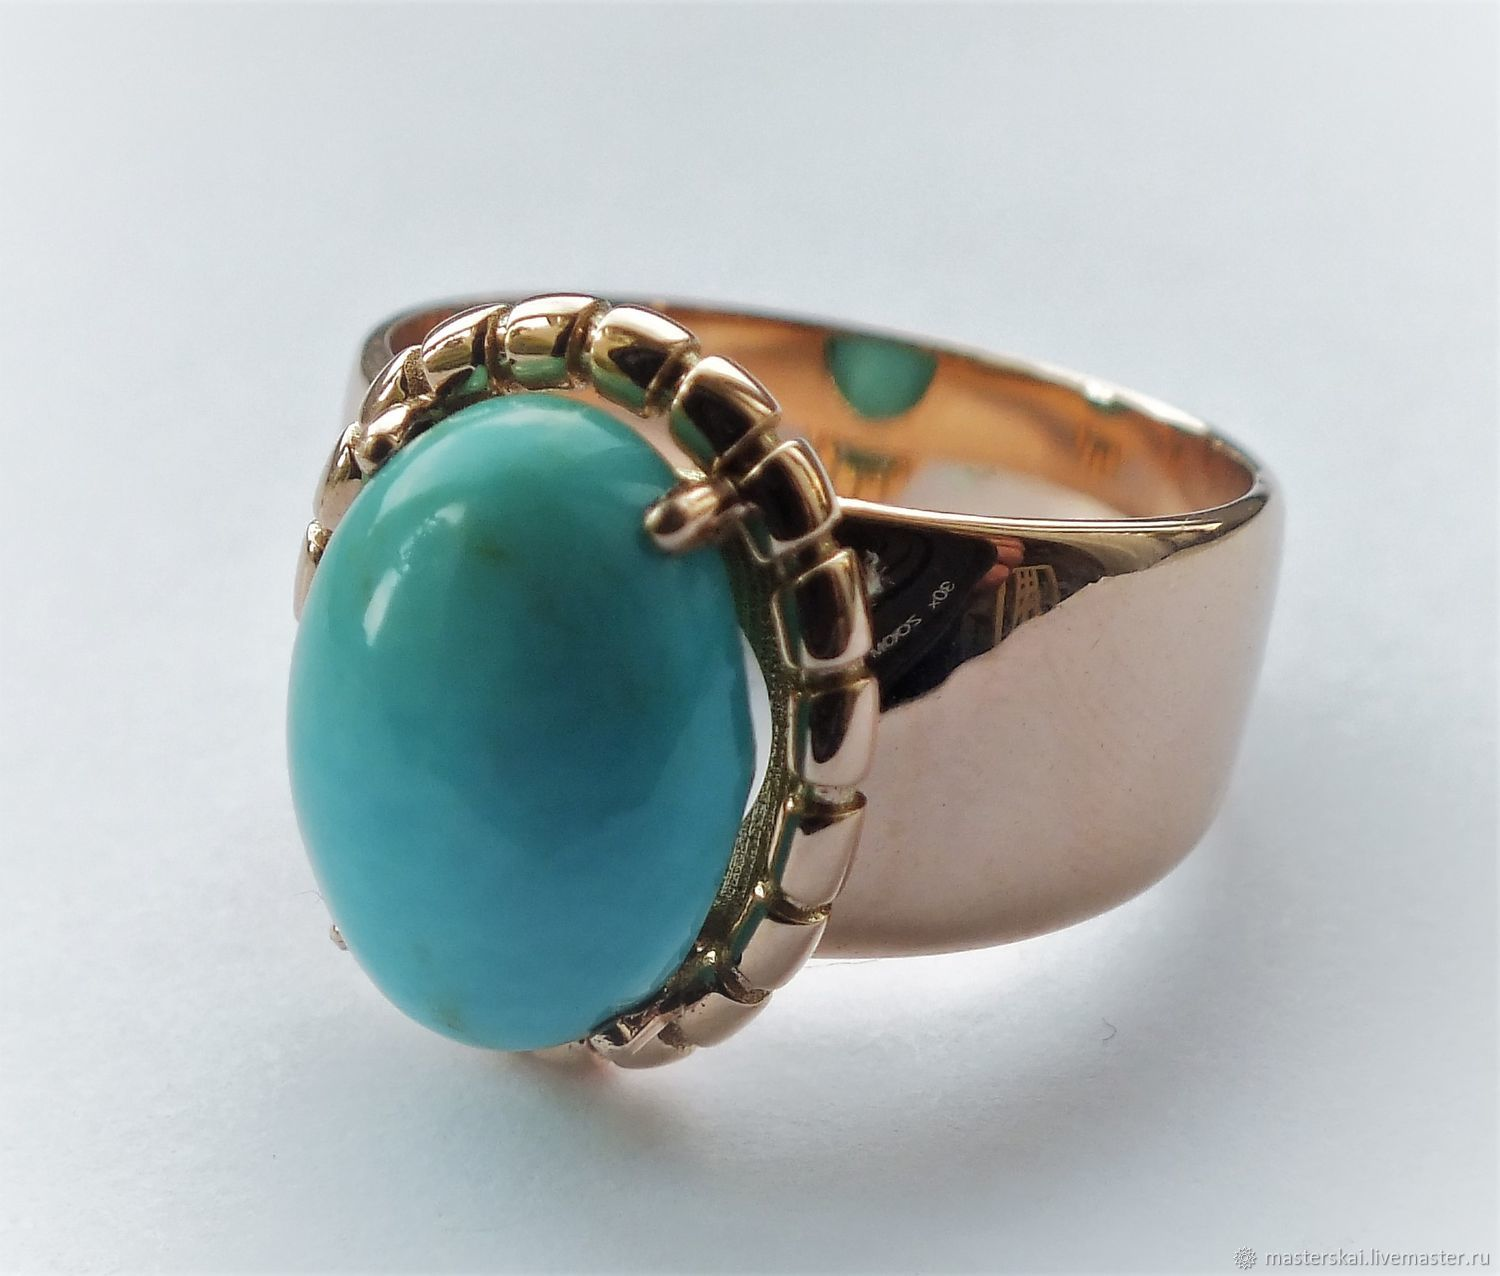 Ring 'Eugene' - natural turquoise, gold 585, Rings, Moscow,  Фото №1